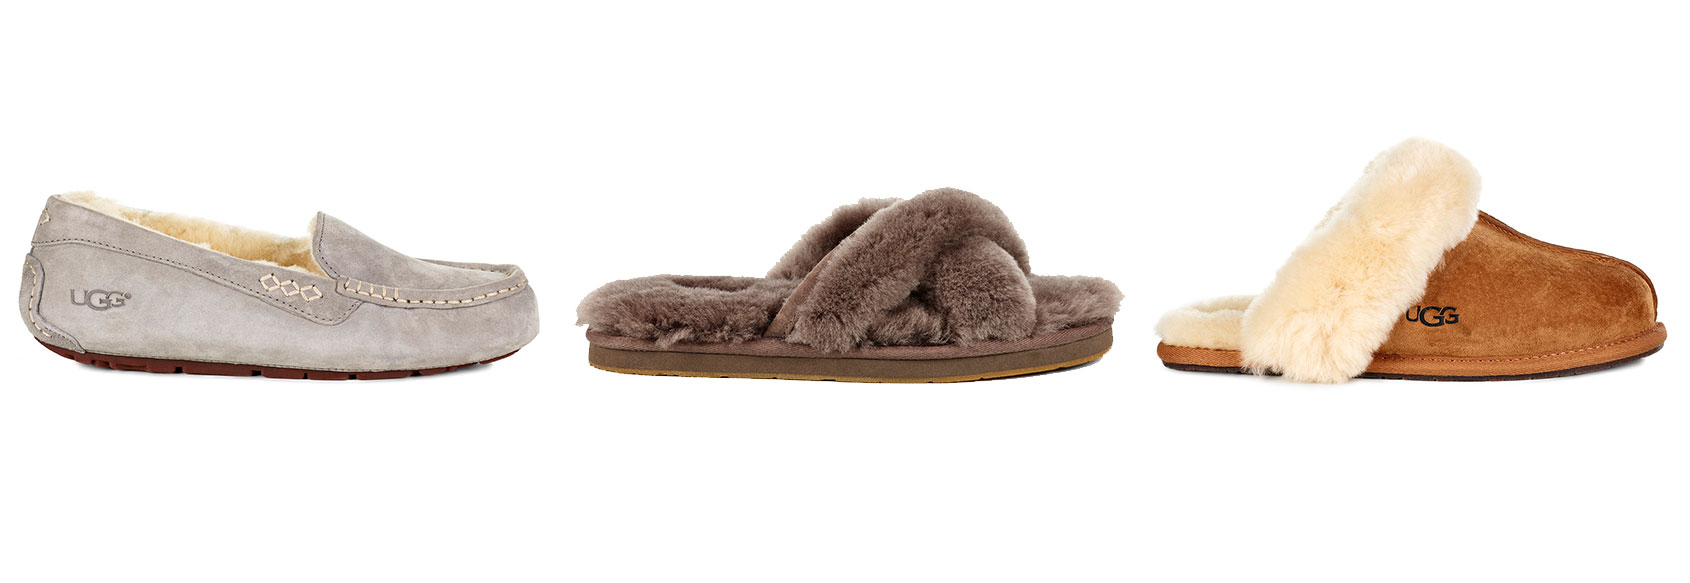 2b9d0f0607f0 Shop Uggs Slippers and Winter Ugg Boots for Women